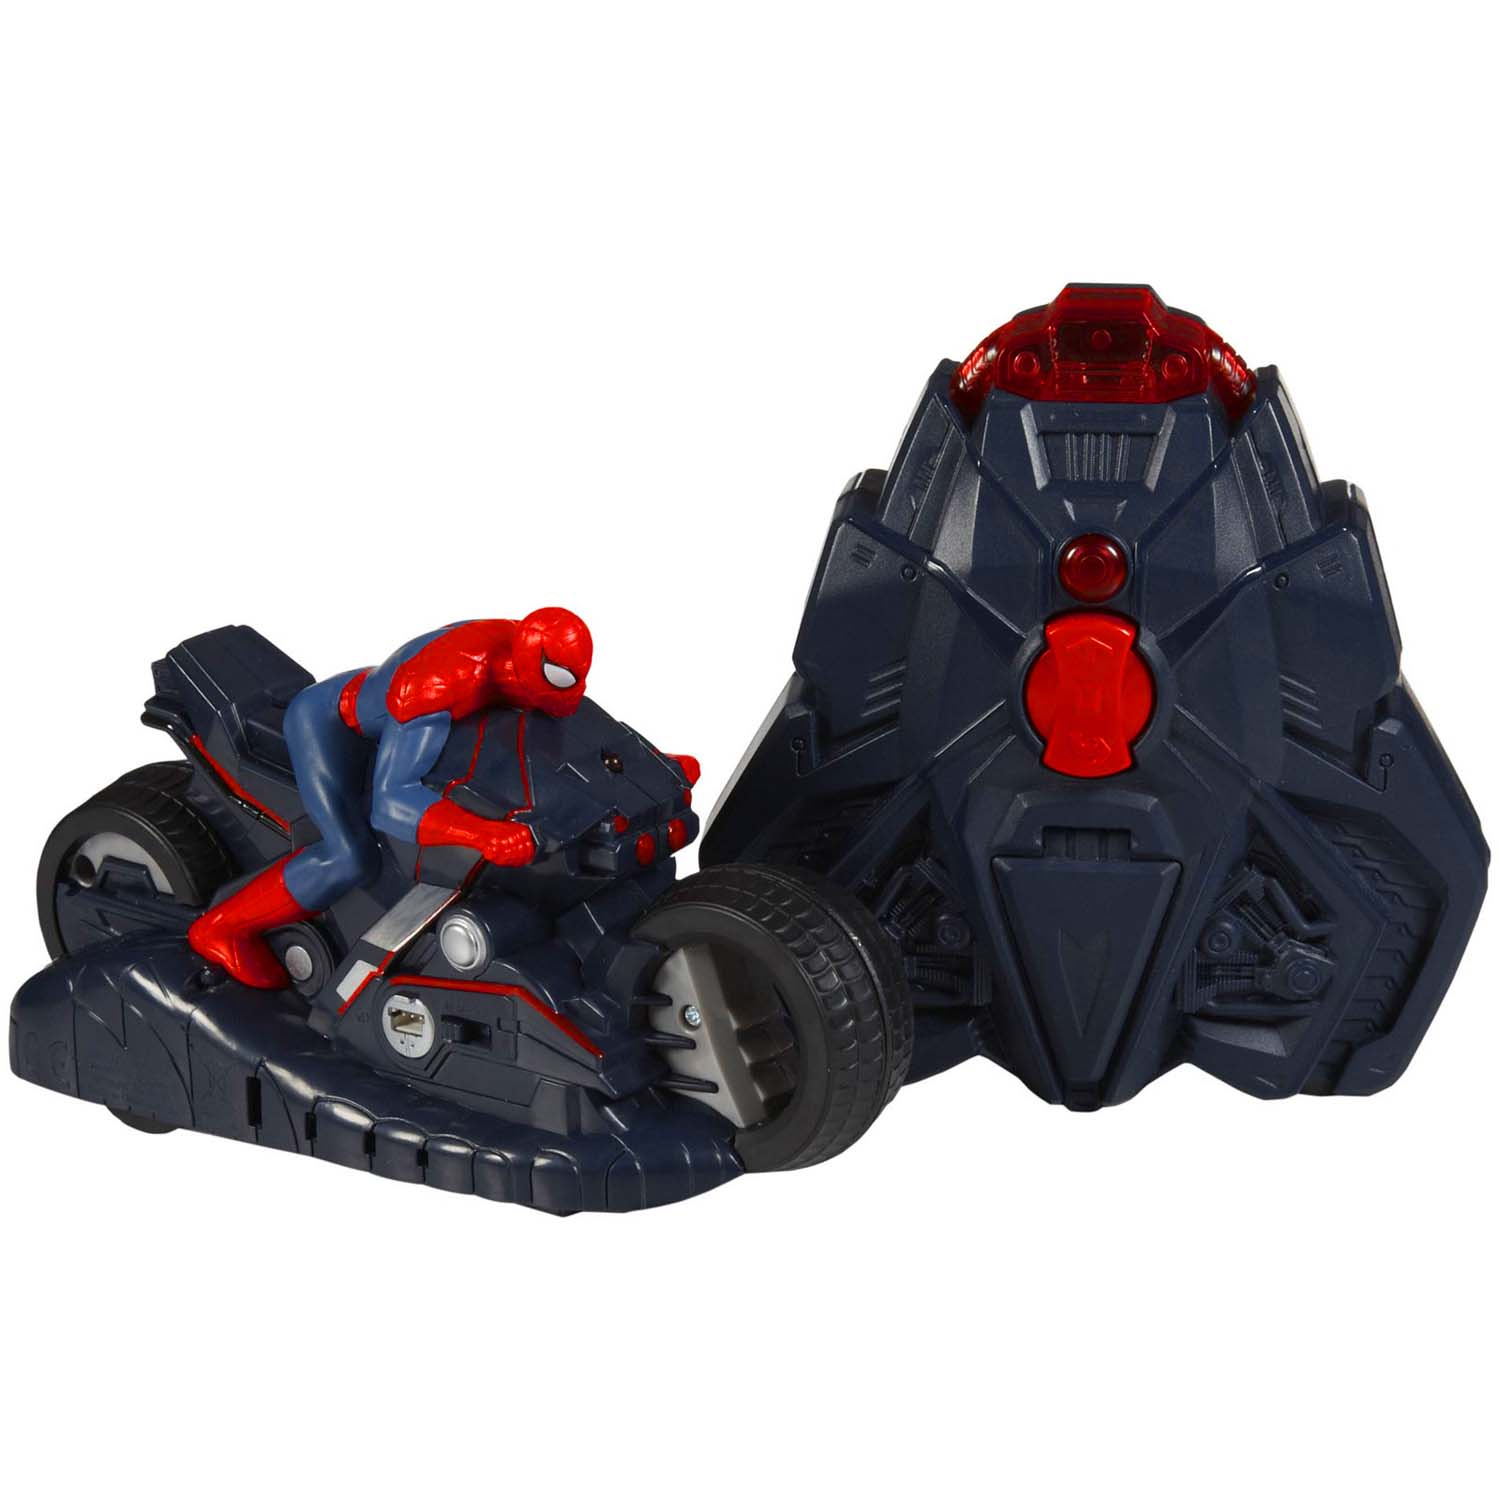 Spiderman bike toy - photo#13